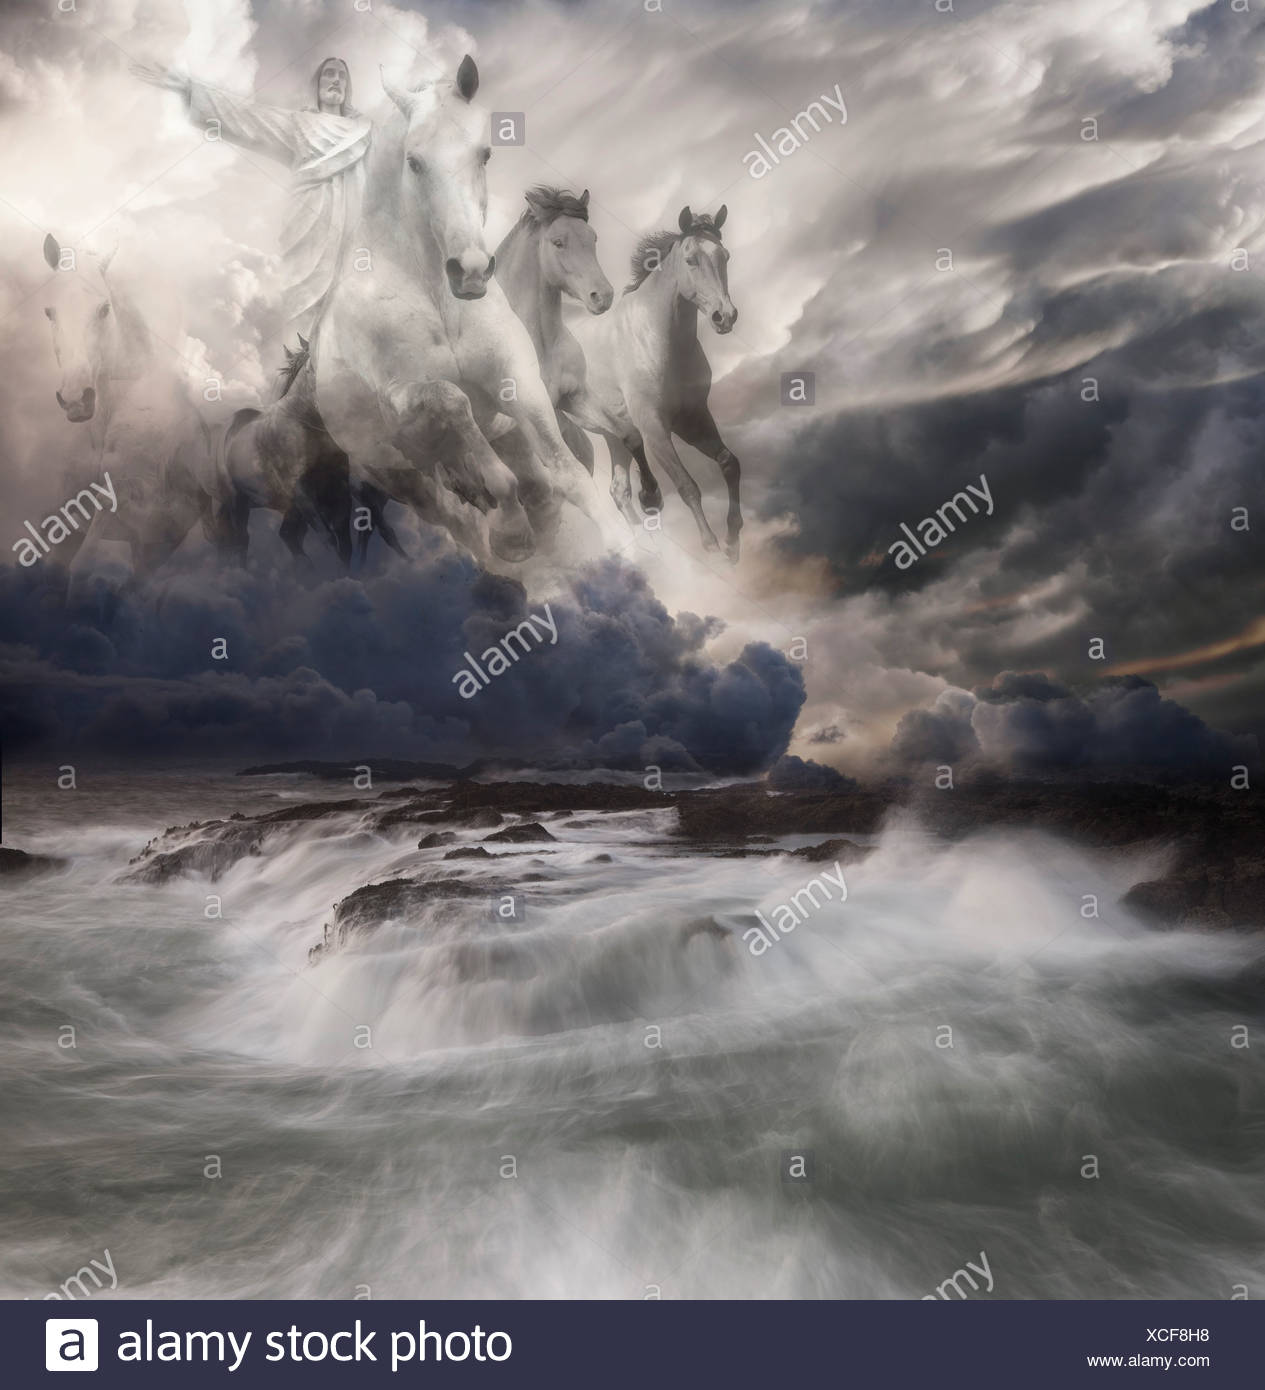 Composite Of Christ S Second Coming On White Horse Stock Photo Alamy